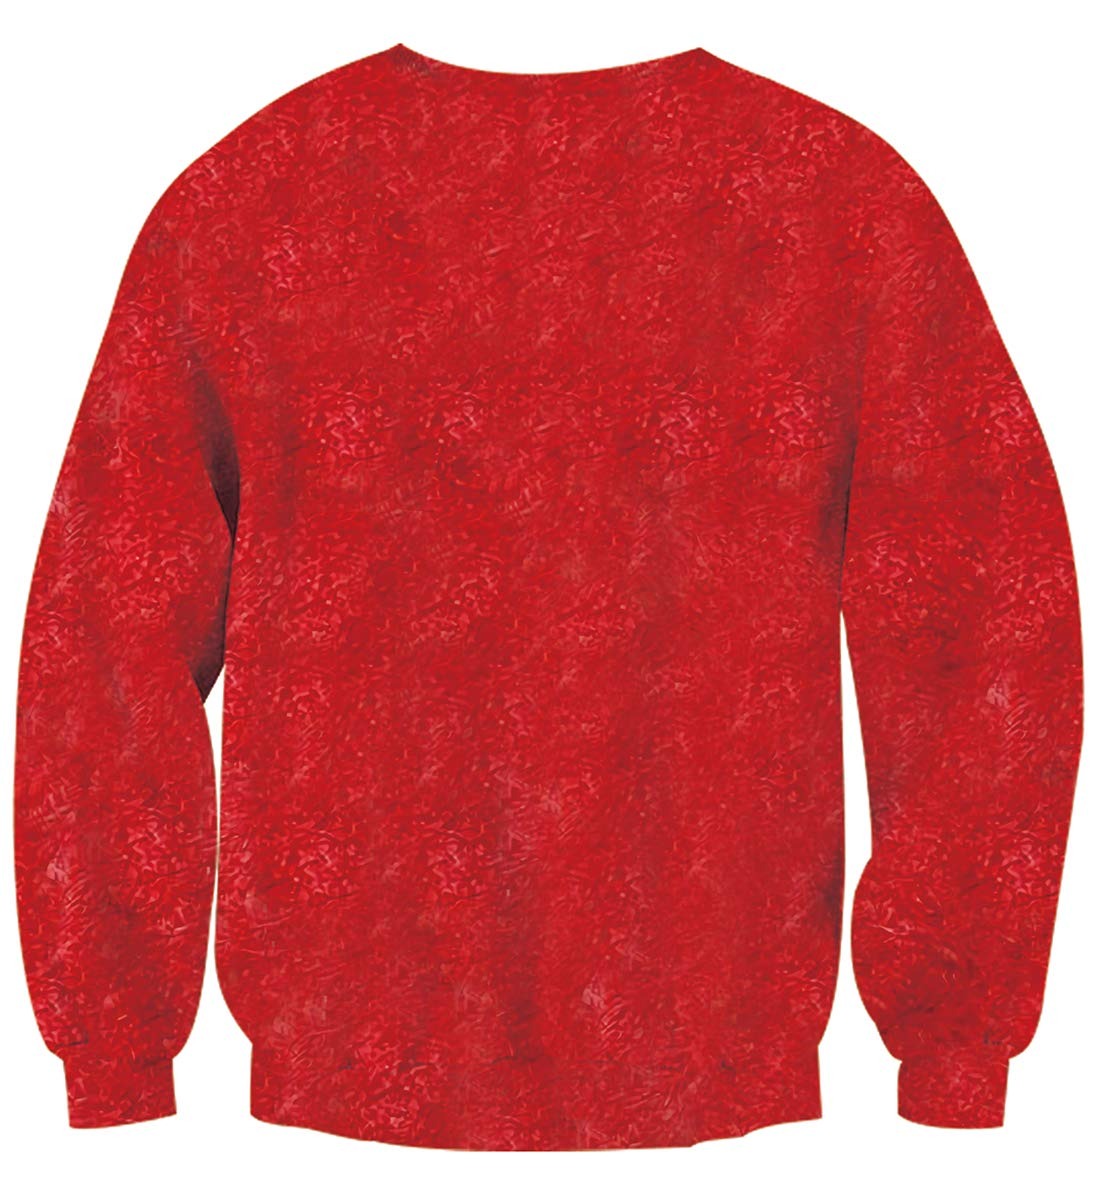 Uideazone Unisex Funny Print Ugly Christmas Sweater Jumper